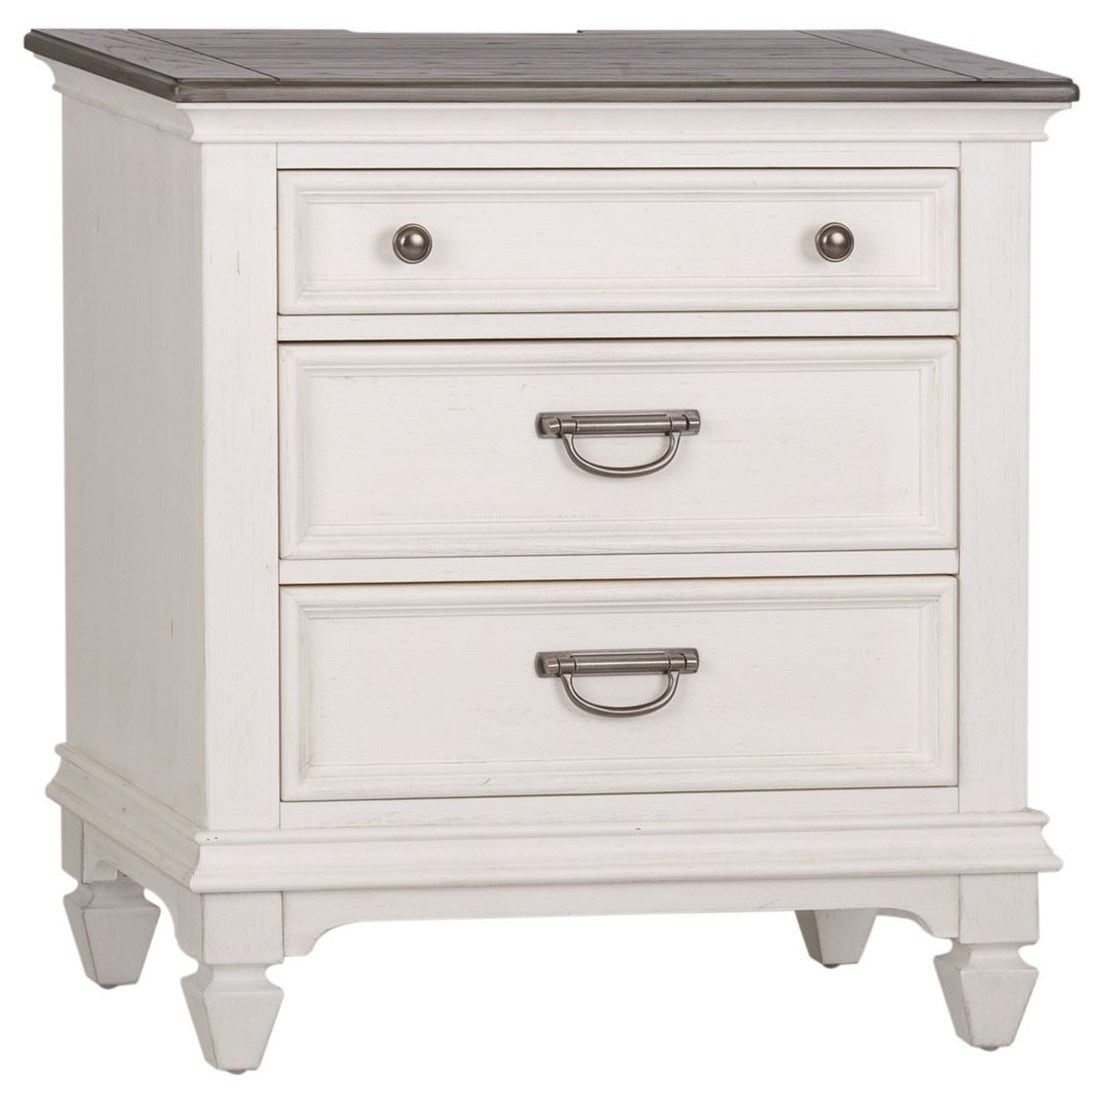 Cottage 3 Drawer Nightstand with Built In Charging Station